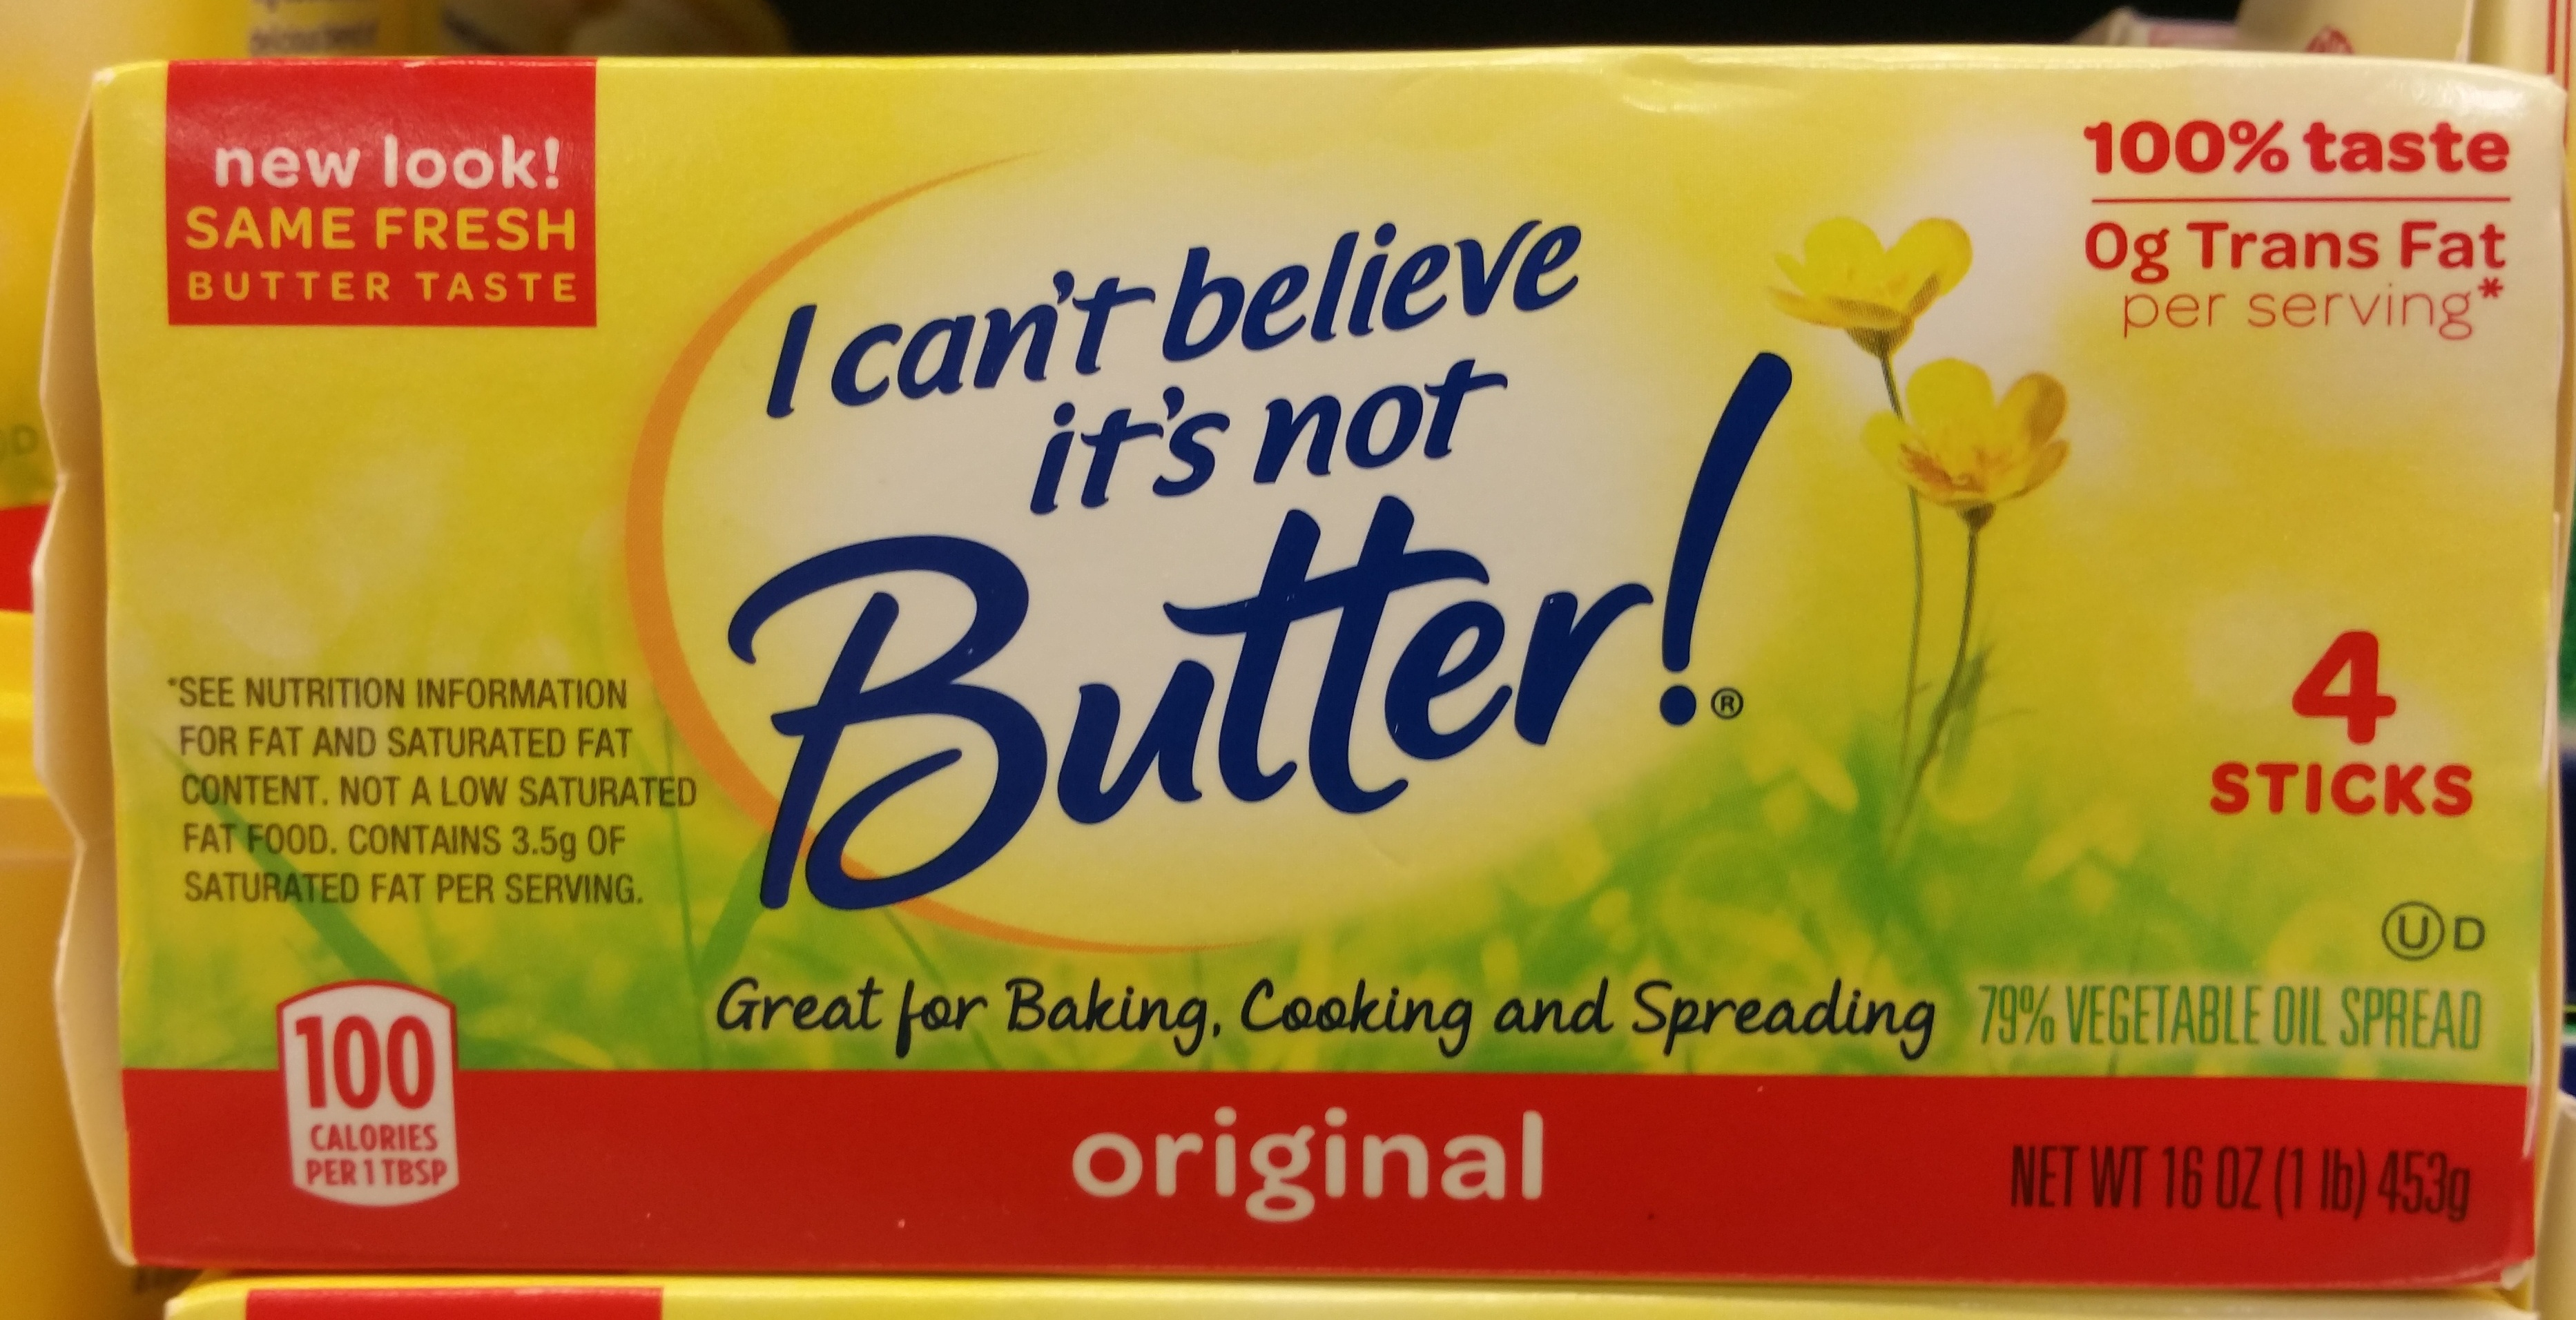 I can't believe it's not butter!, 79% vegetable oil spread, original - Product - en